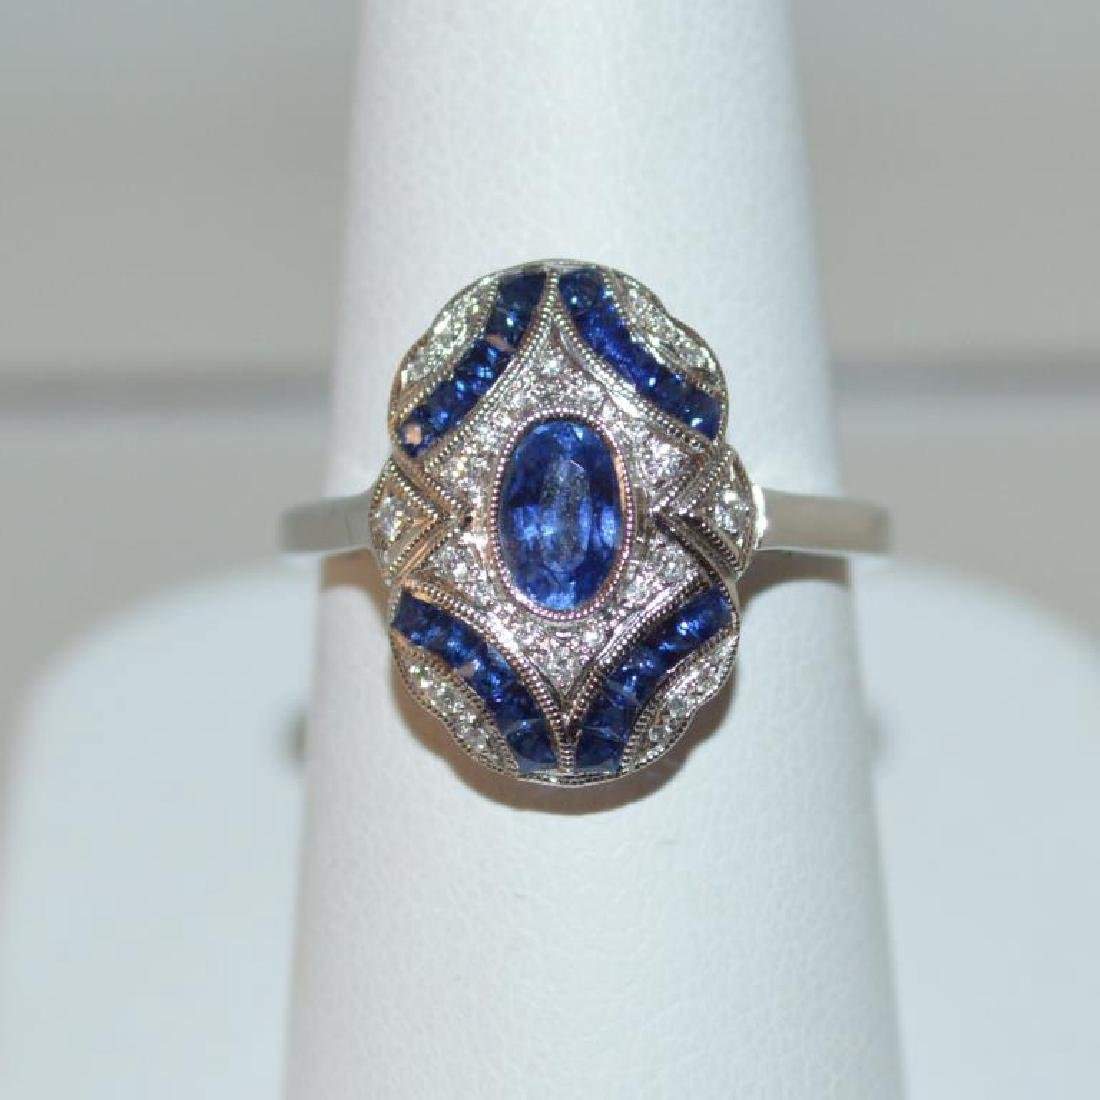 18kt white gold vintage style sapphire ring